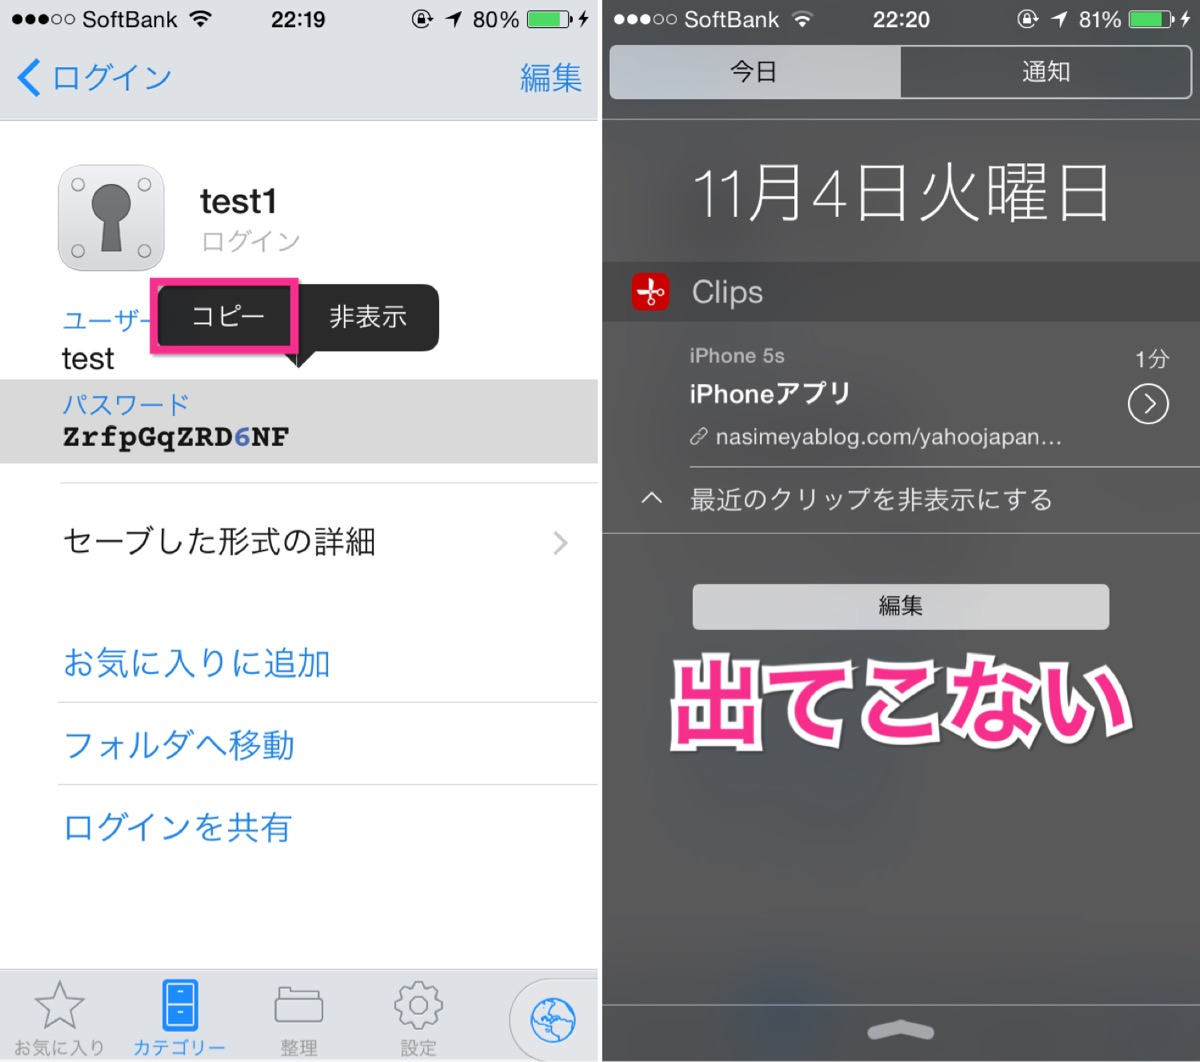 clipsと1Password